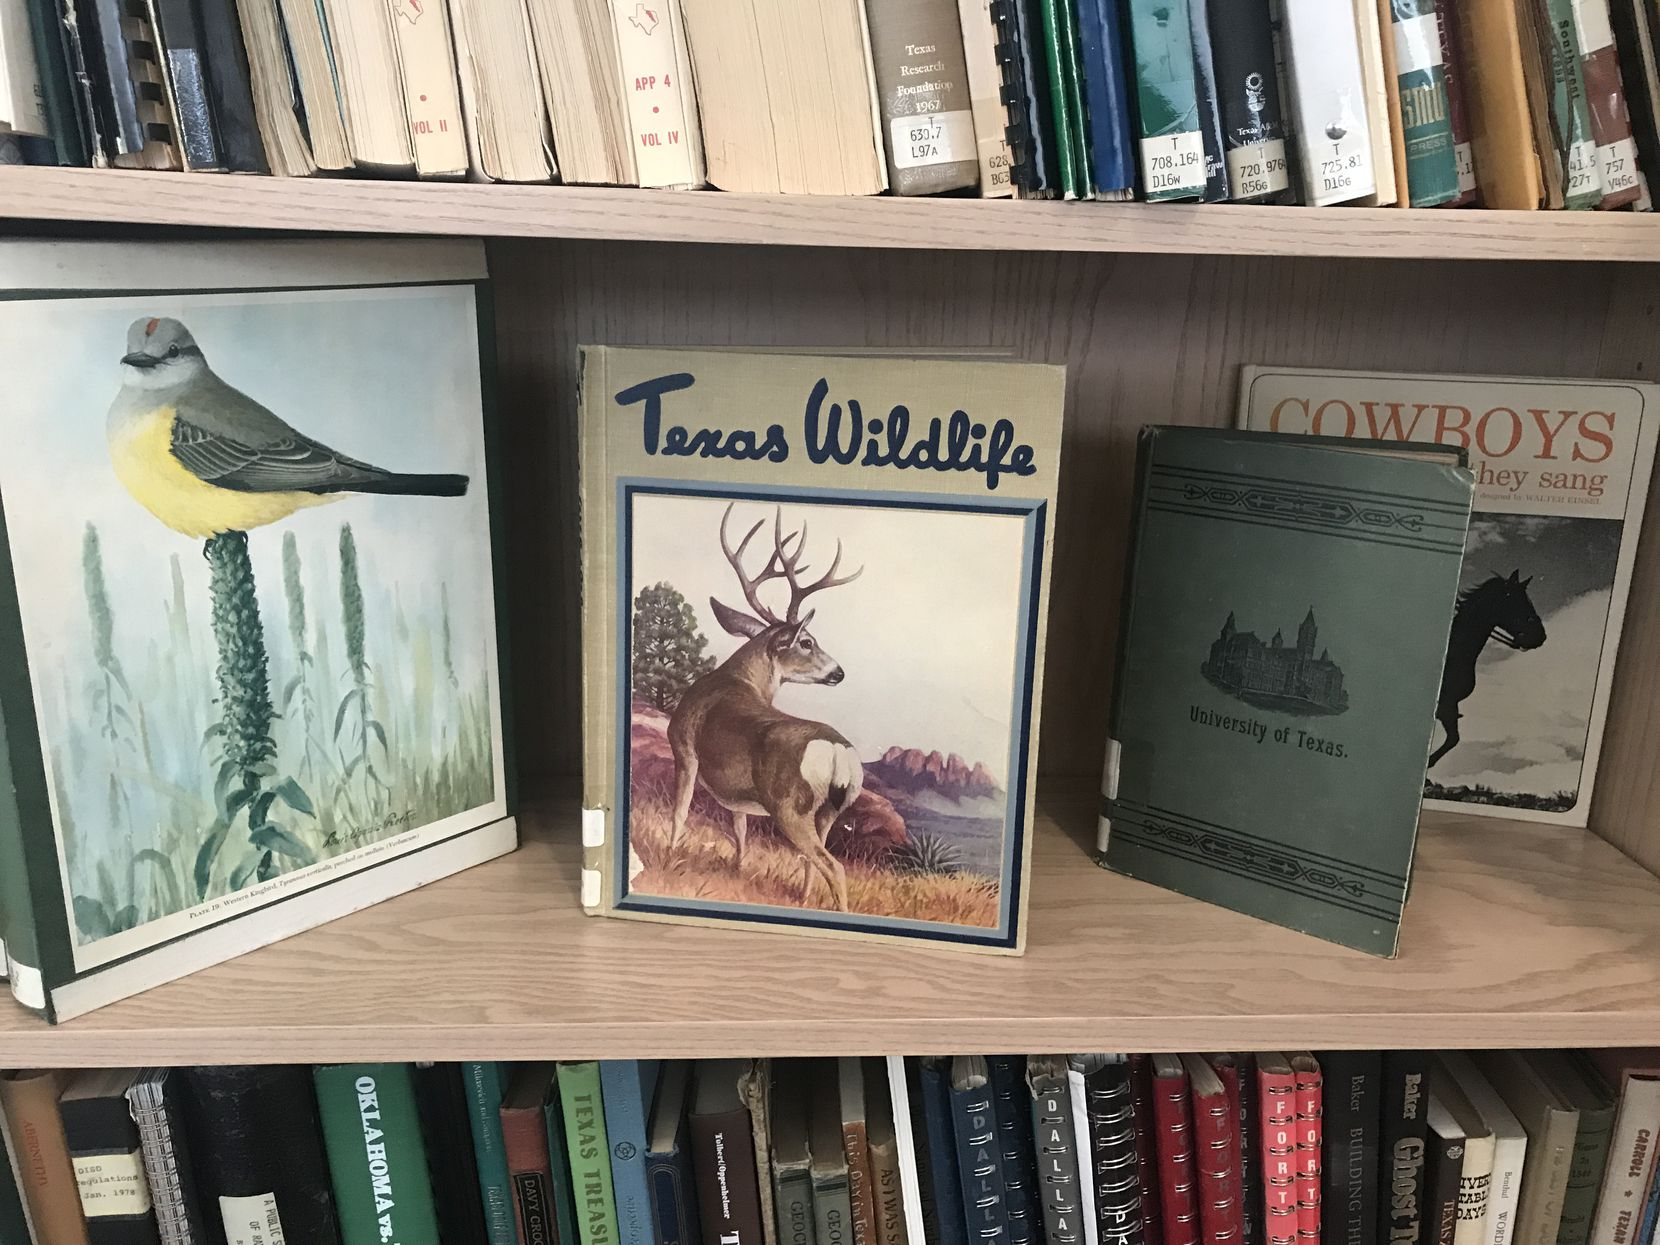 A Texana tableau featuring The Bird Life of Texas, Texas Wildlife, a 1891 guide to the University of Texas and Cowboys and the Songs they Sang.